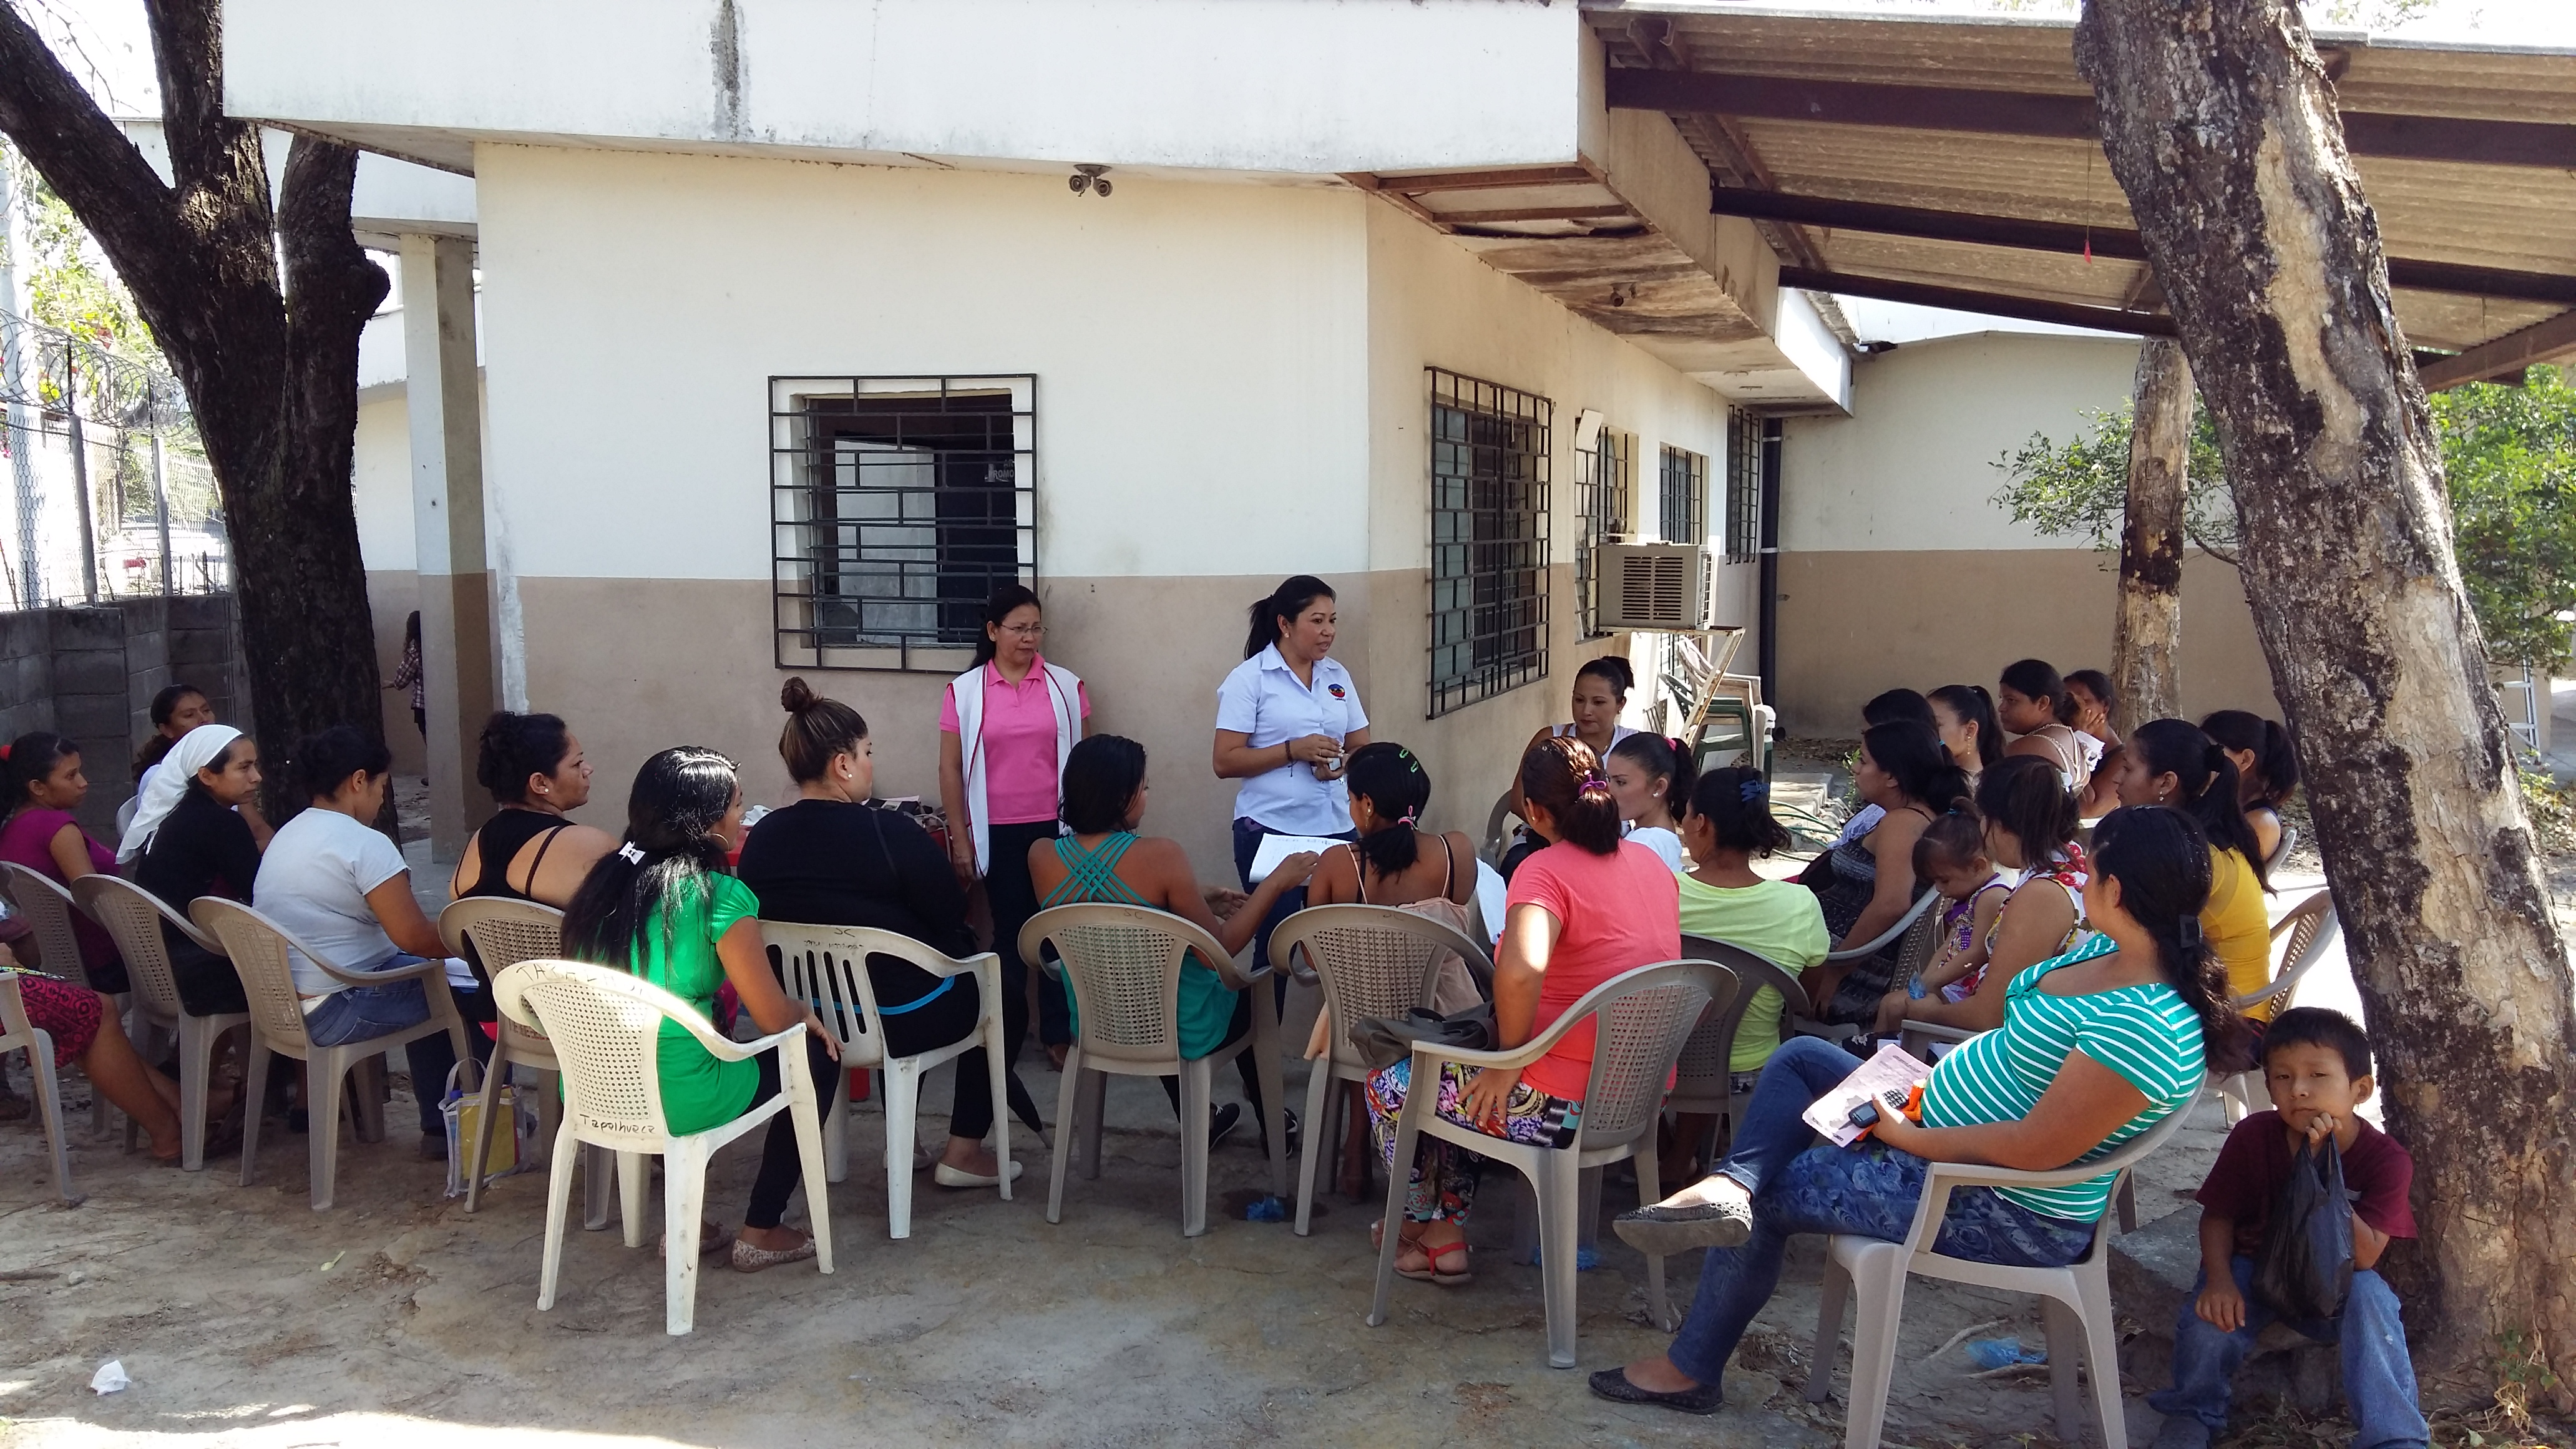 A group of women sit outside on chairs listening to a woman speak at the Mothers' Group in El Salvador